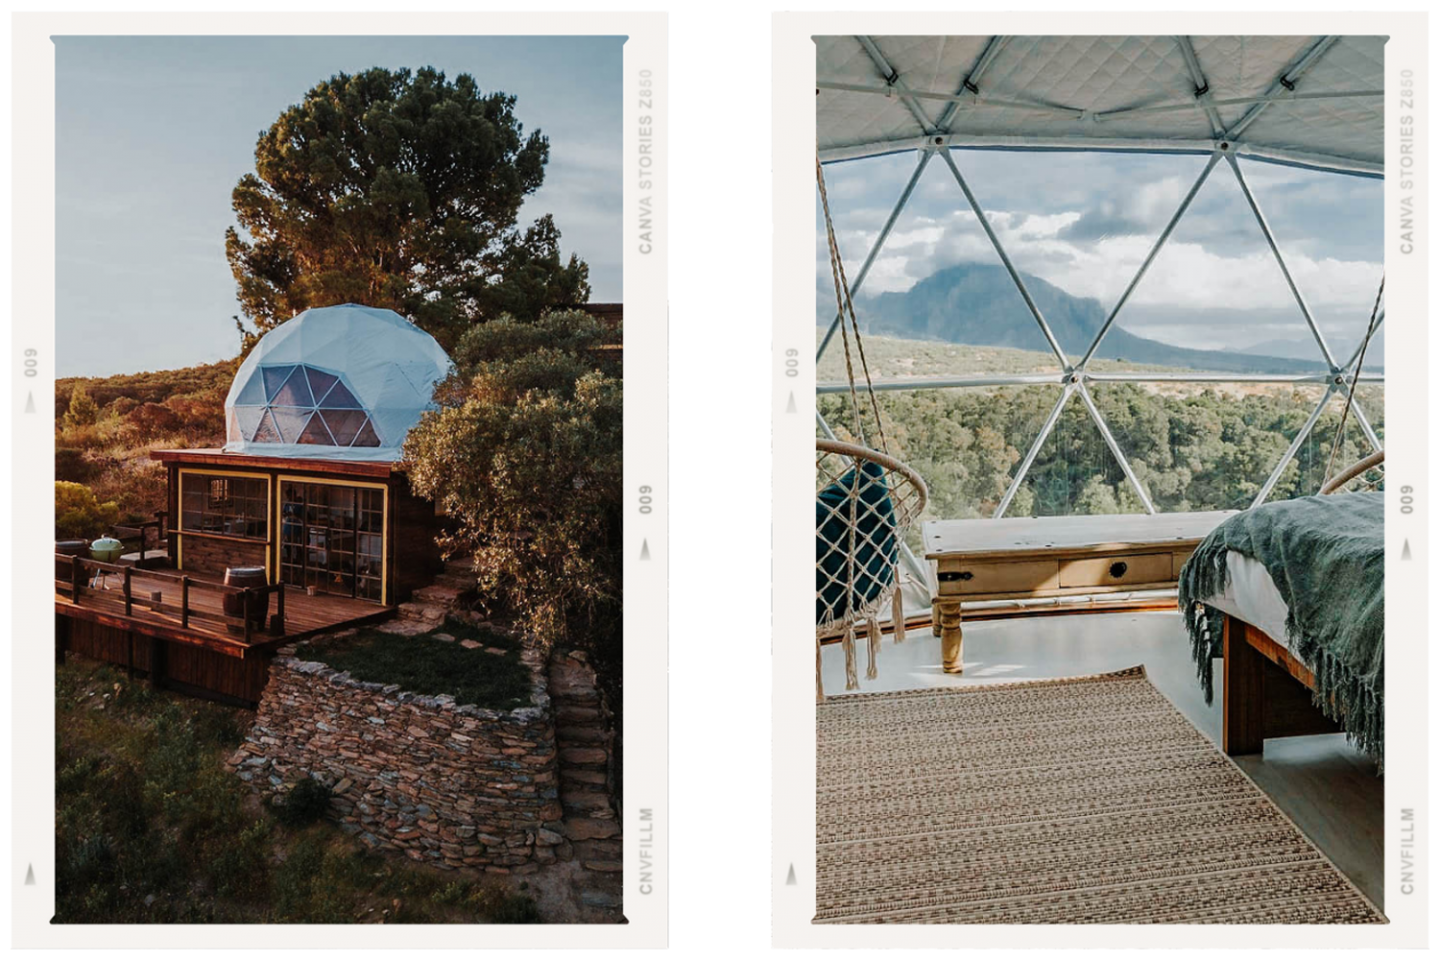 tulbagh-romantic-airbnbs-in-south-africa